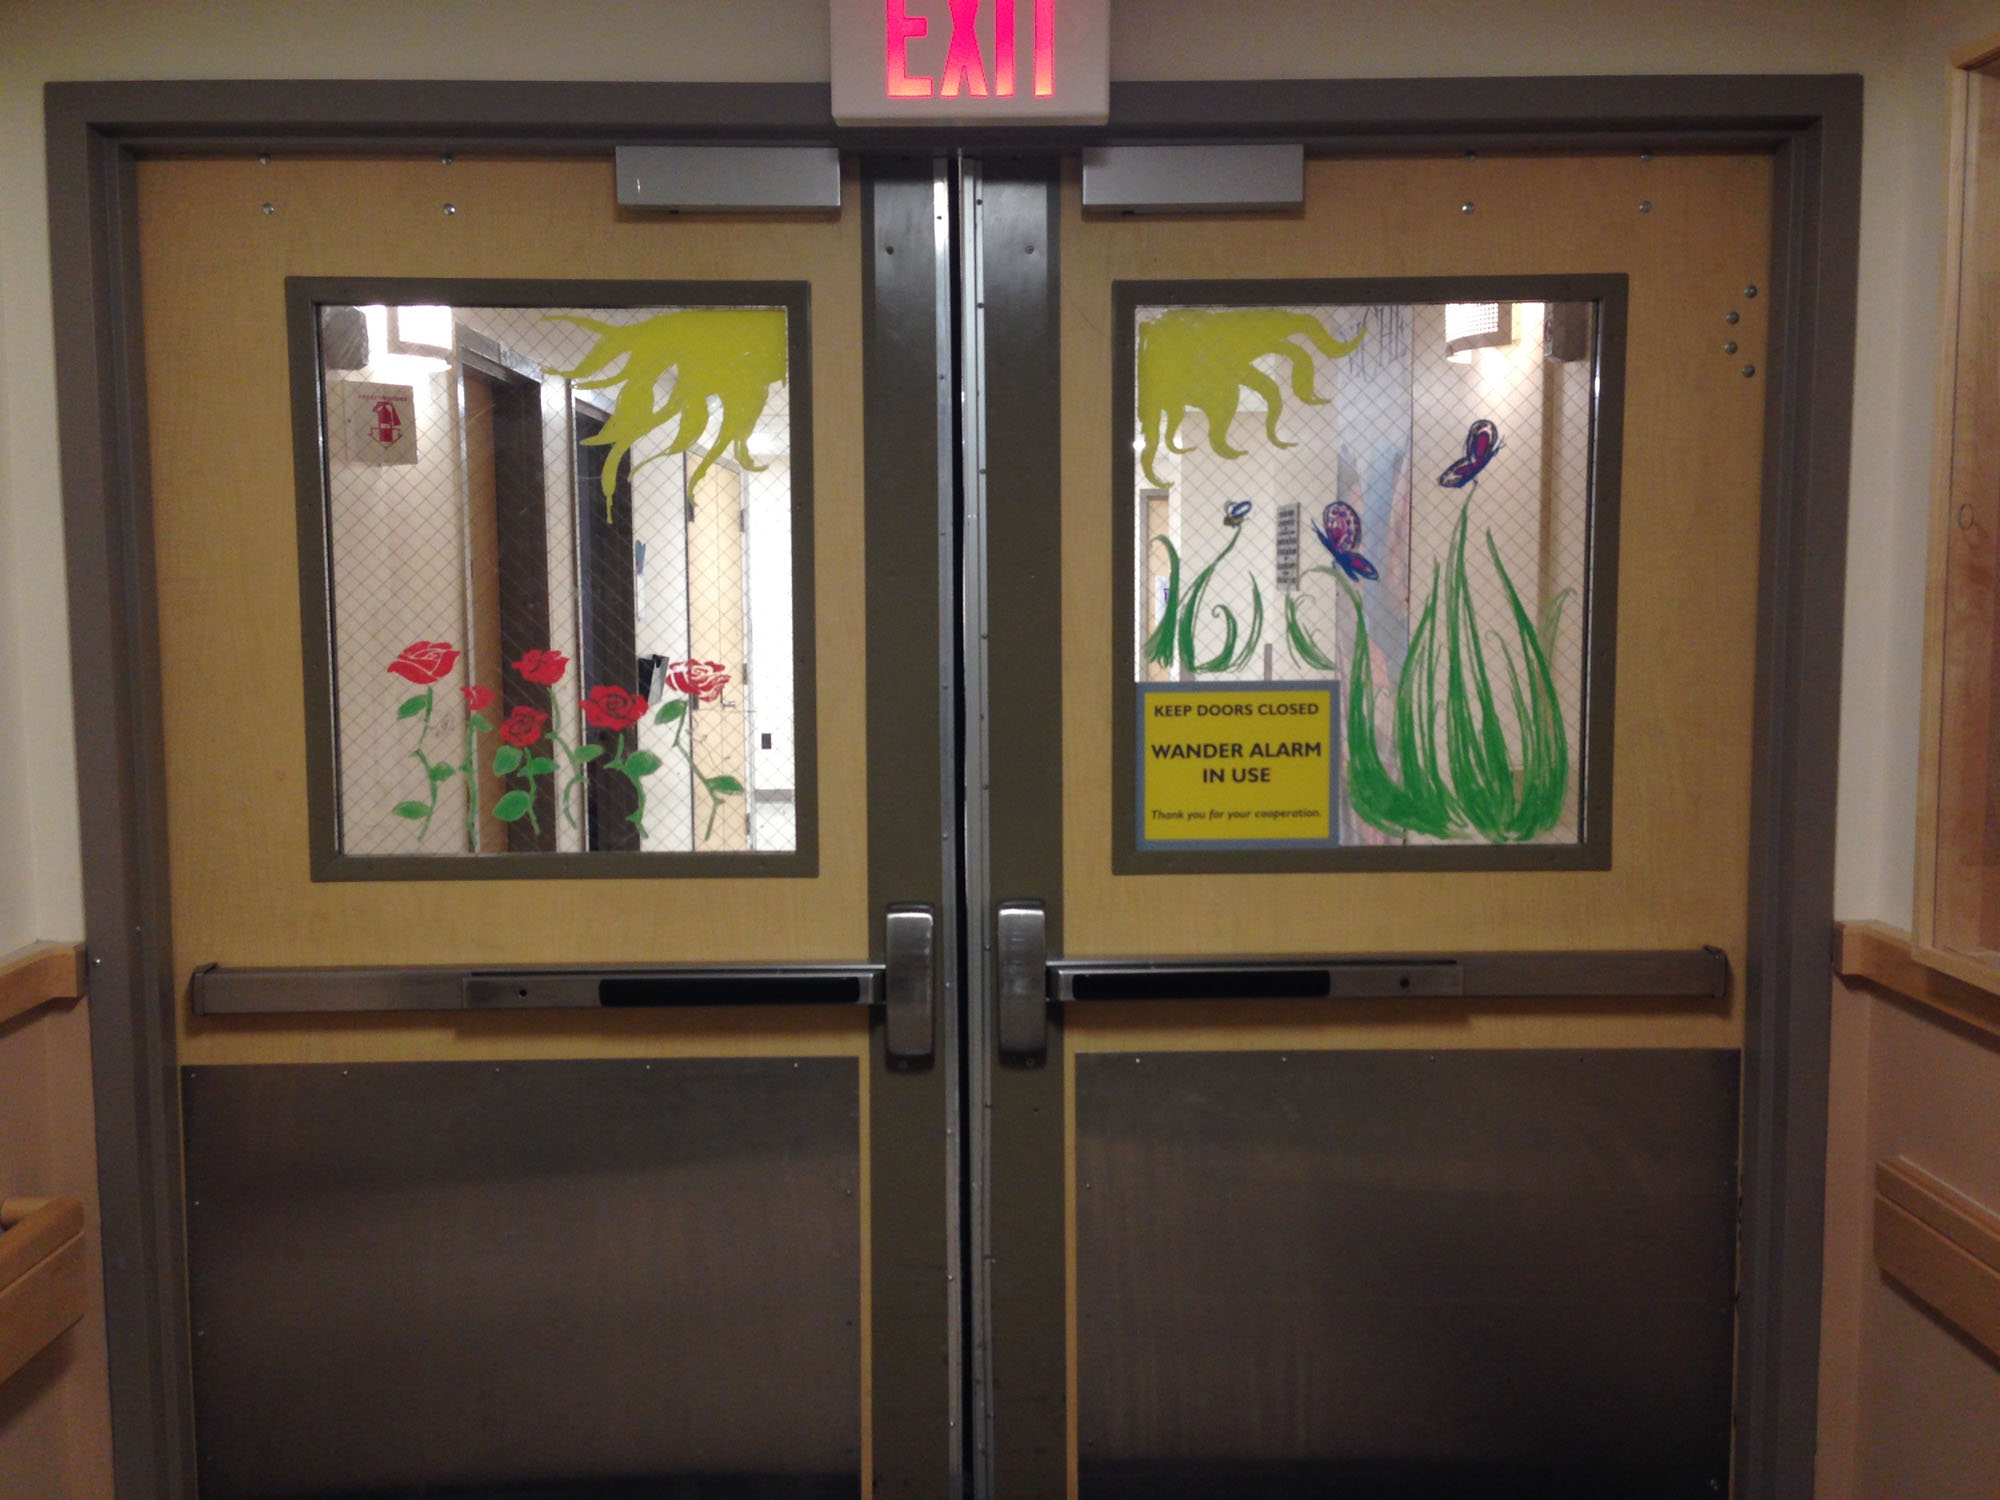 Window drawings by volunteers to help greet people at the entrance to a hospital unit.